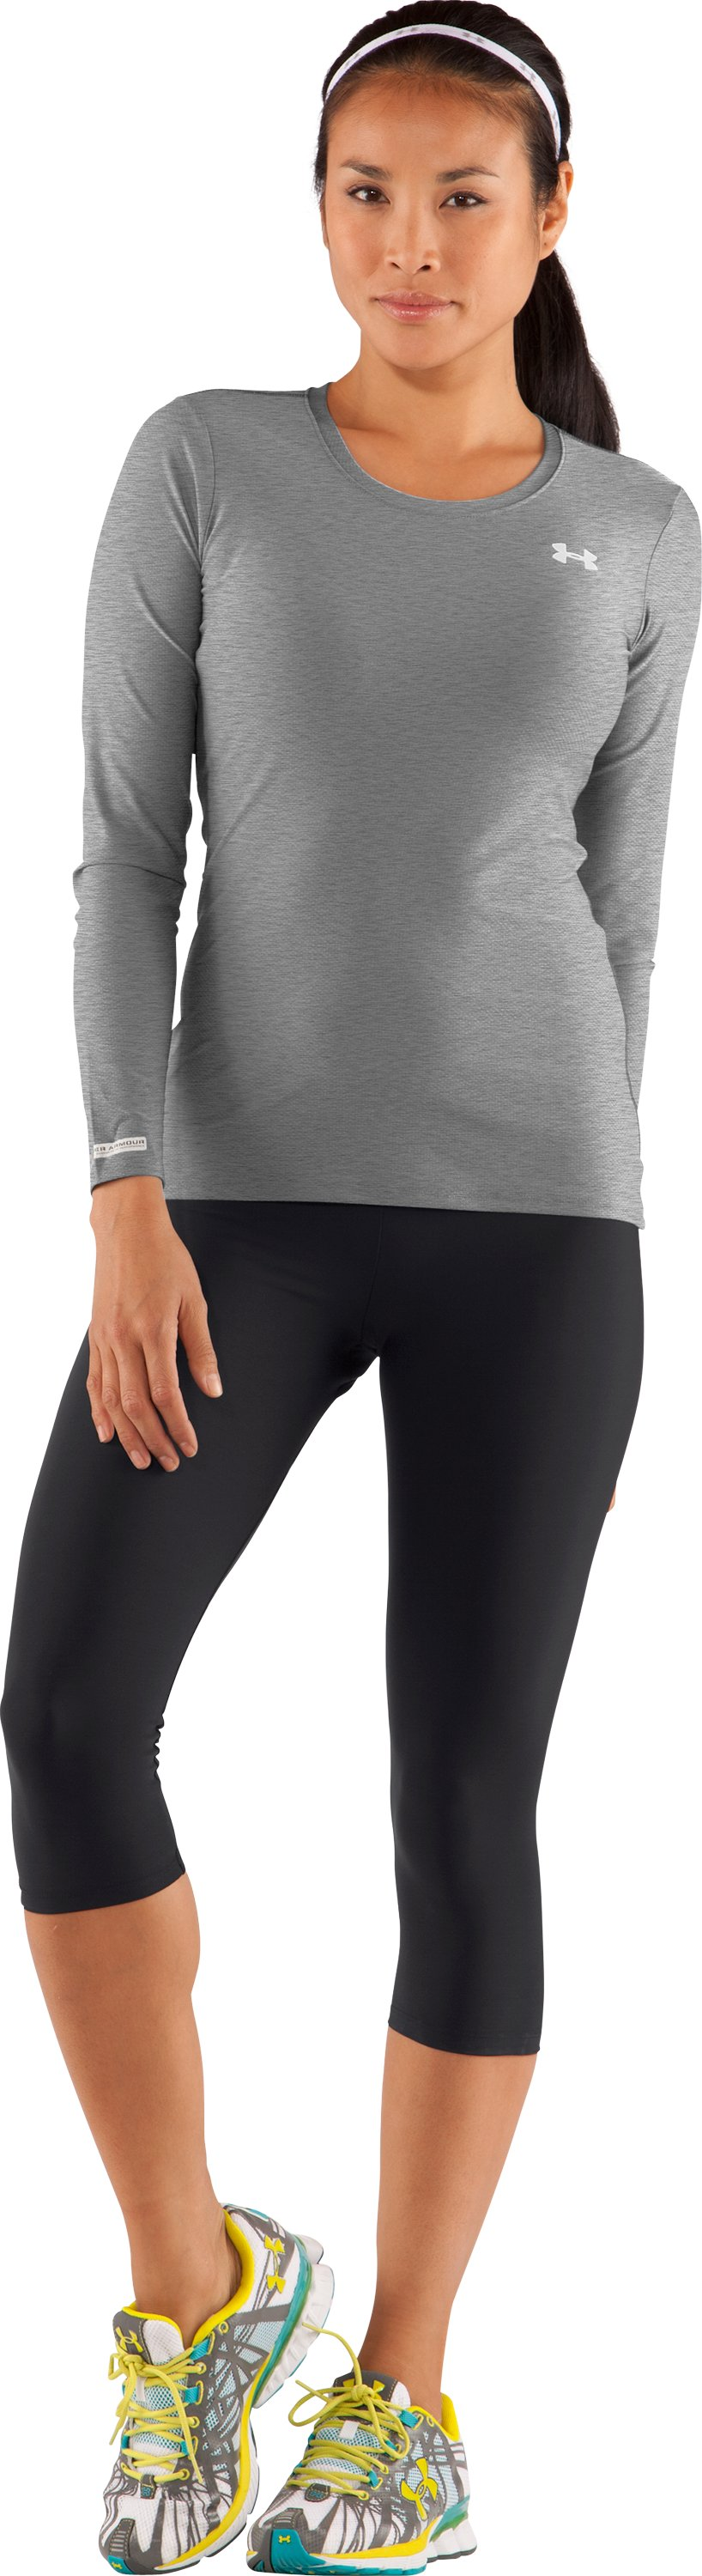 Women's UA HeatGear® Fitted Long Sleeve Shirt, True Gray Heather, zoomed image